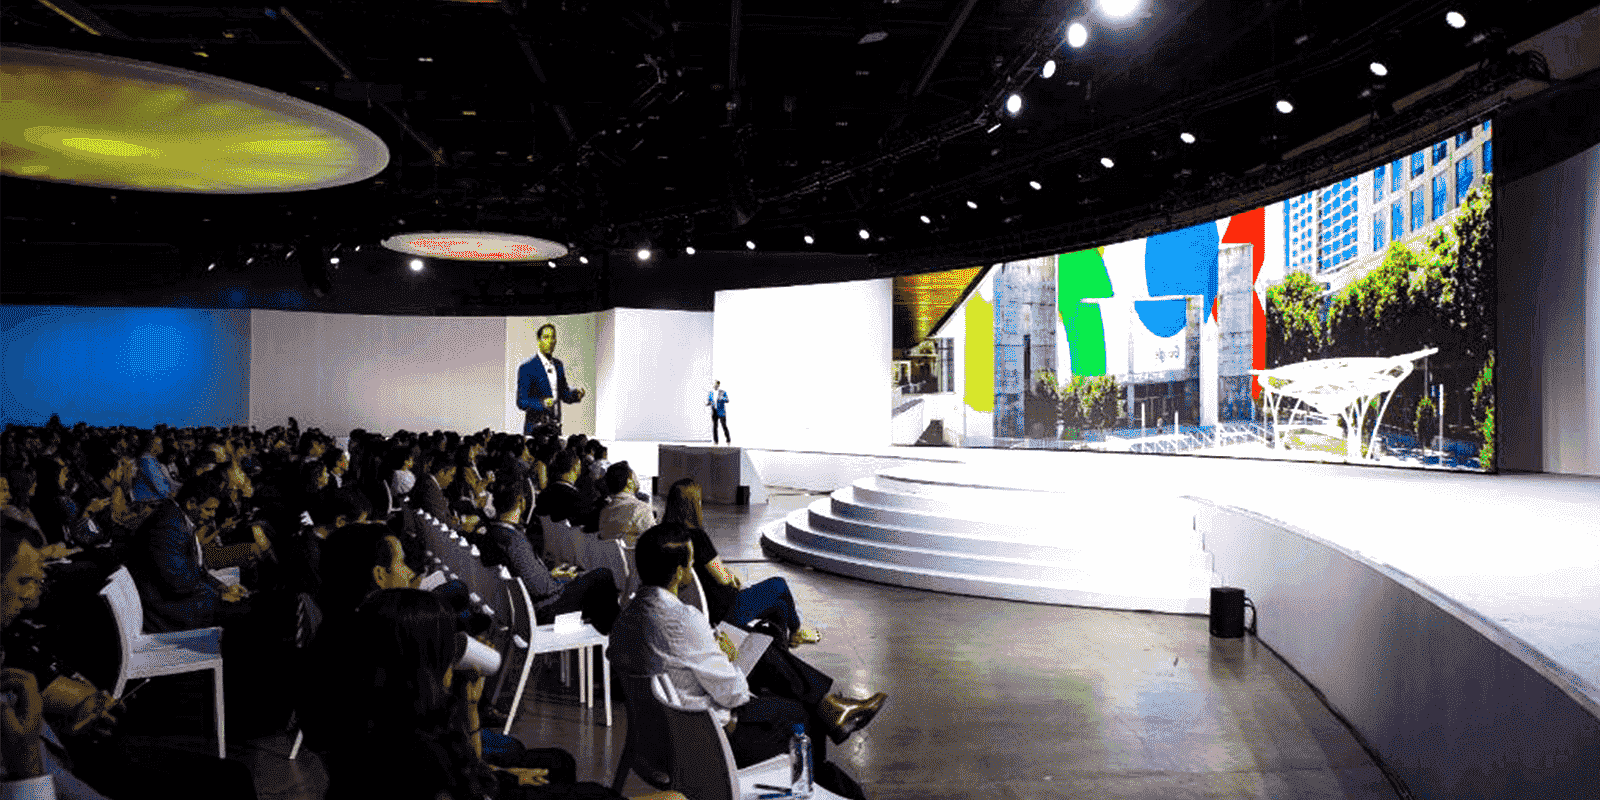 Google Marketing Live 2019 Keynote - Machine Learning to Drive Google Ads Advancement